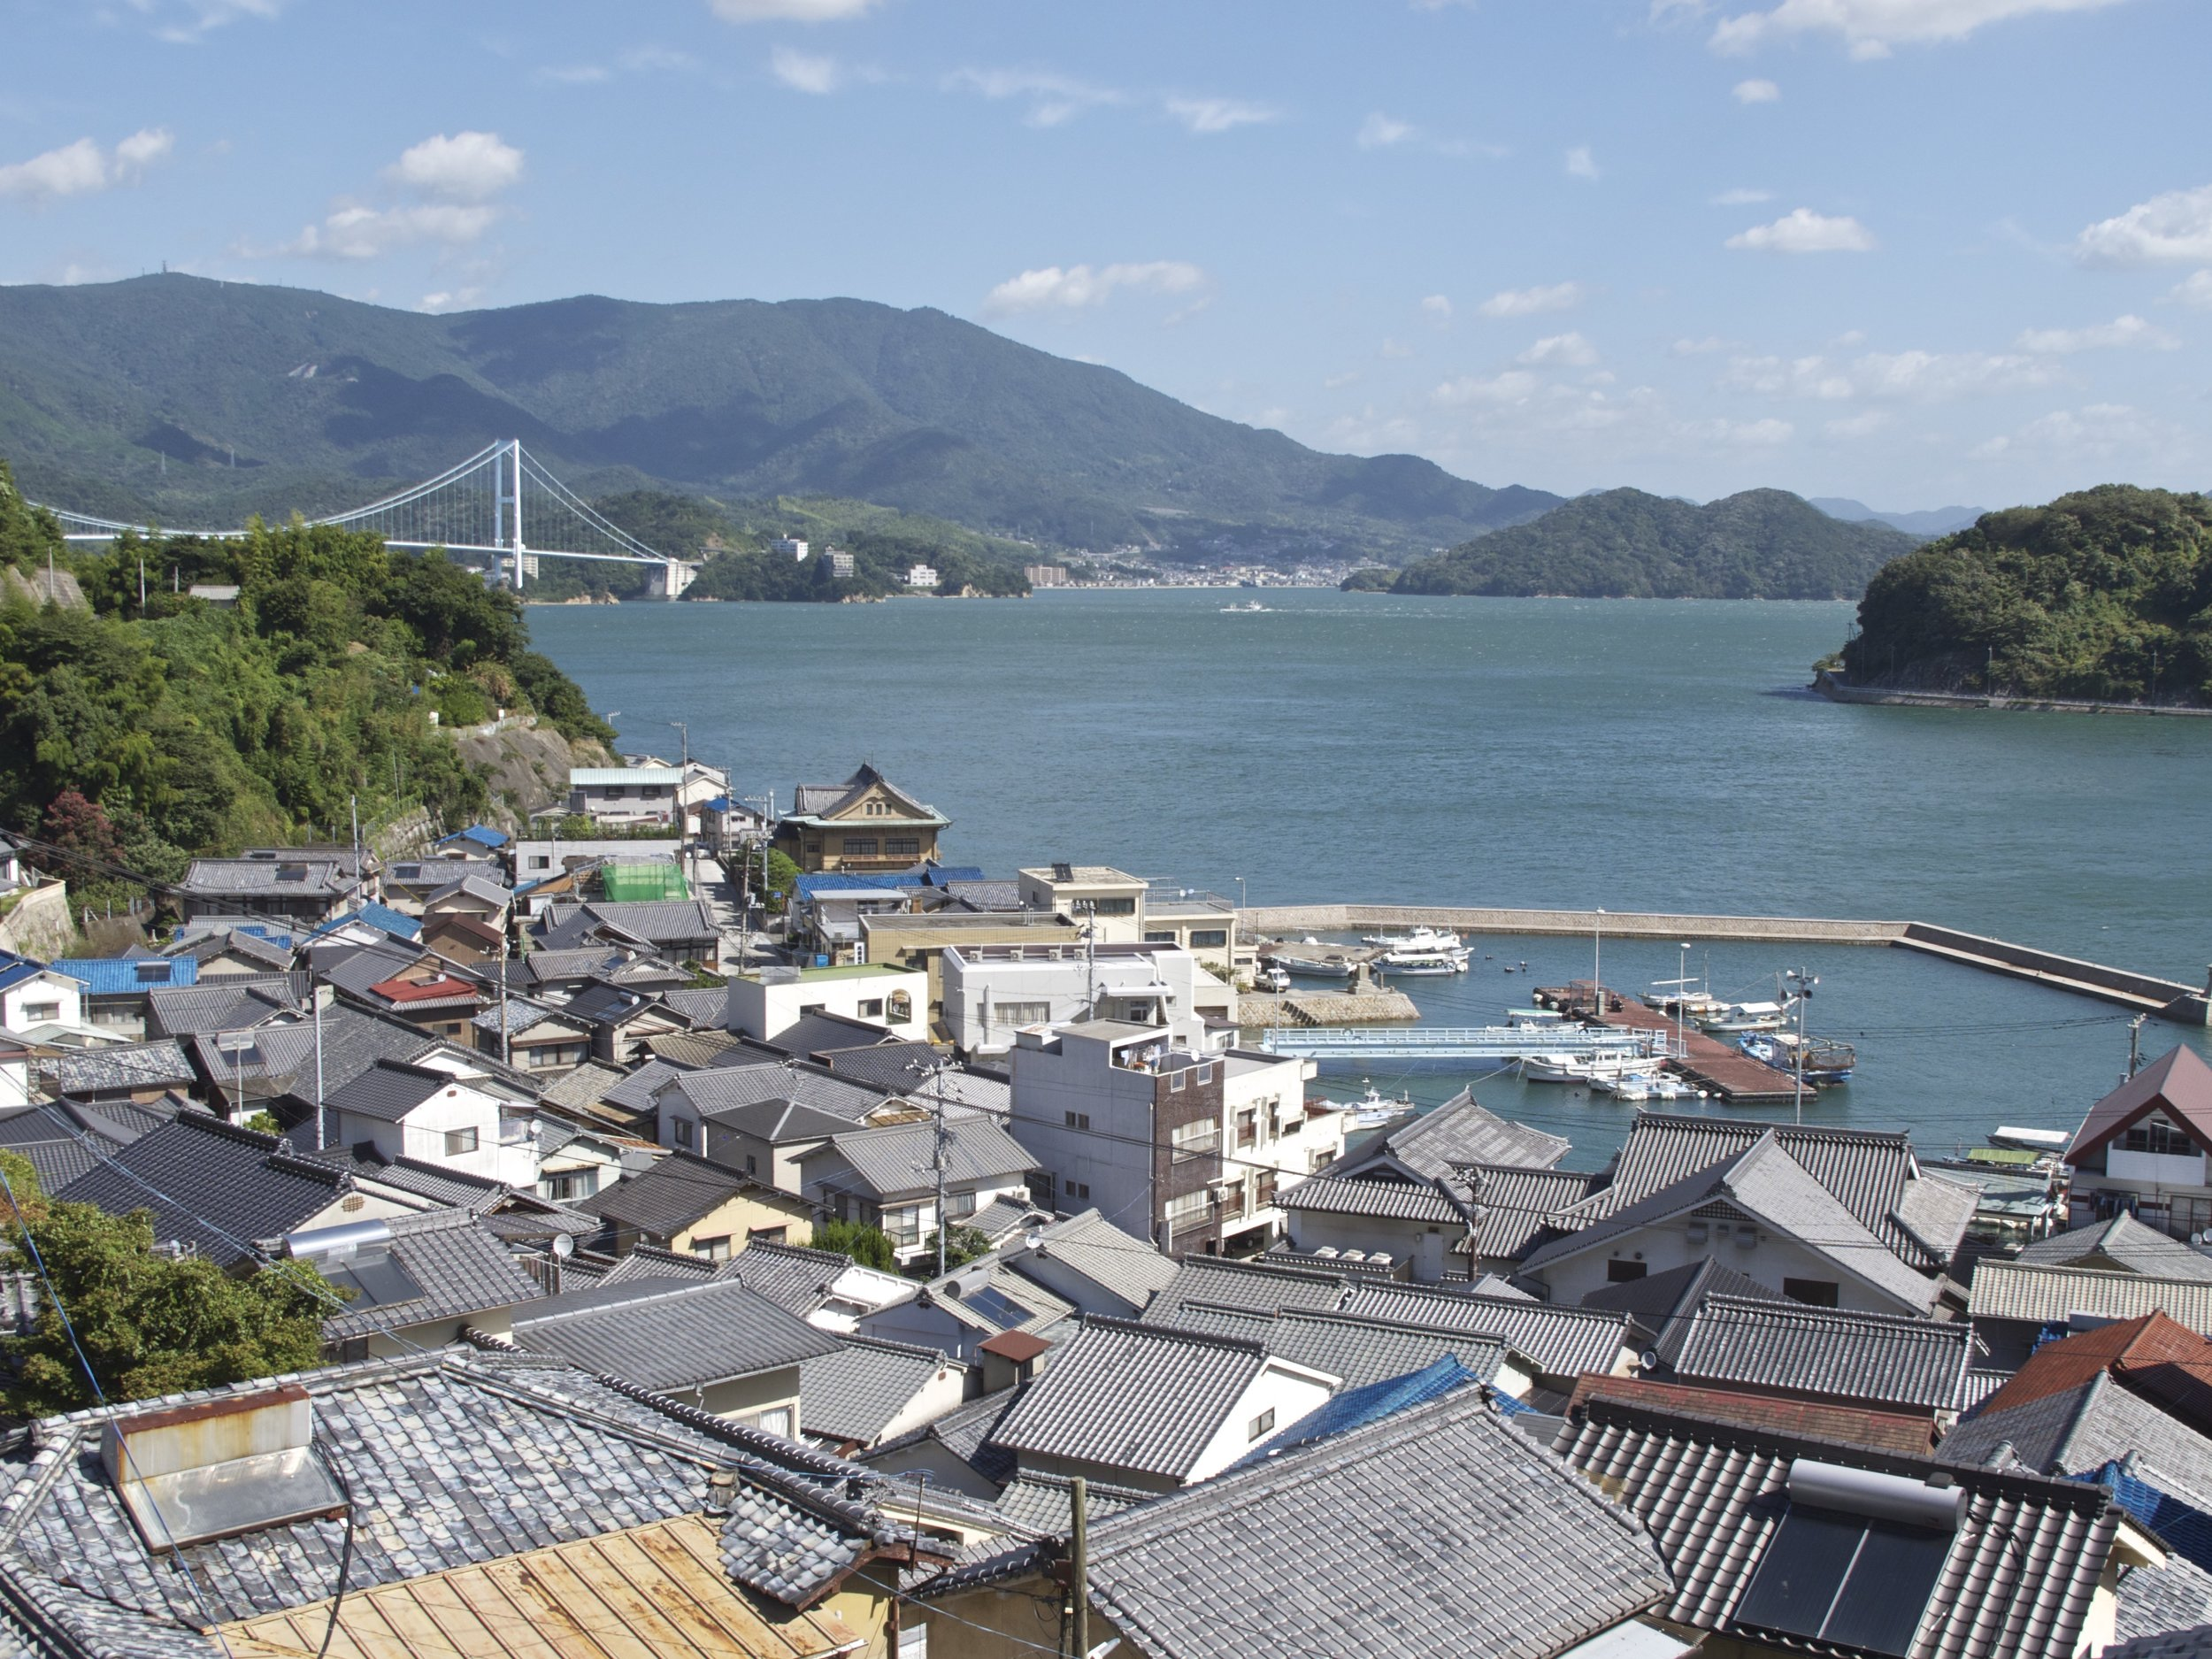 The small port town of Sannose on neighboring Shimo-kamagari Island was a principal stop by Chinese and Korean emissaries as they made their way by boat to Osaka and Kyoto during the Edo period (1603-1868), and today maintains an interesting set of museums about life during that time.